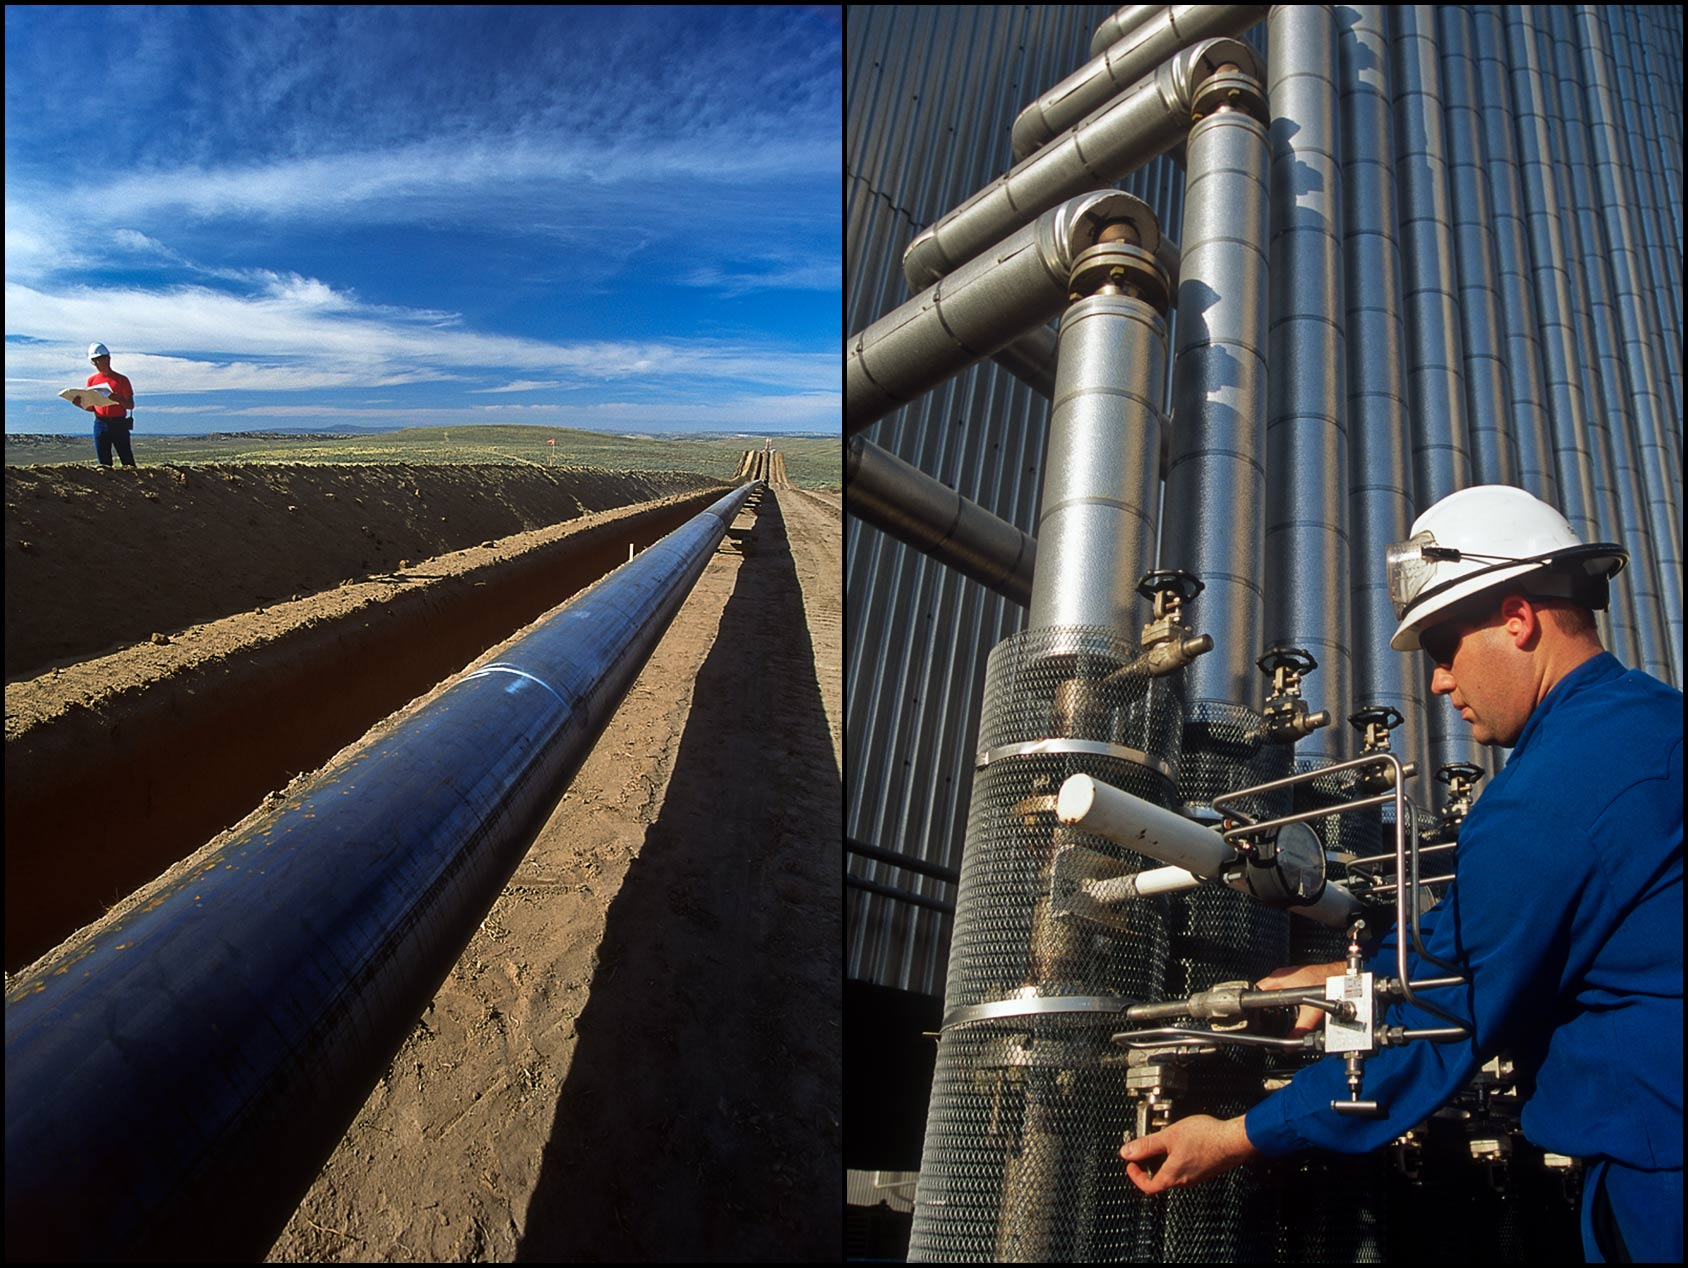 An inspector walks the trench at a pipeline construction site (L), A refinery operator works at a valve stack (R).